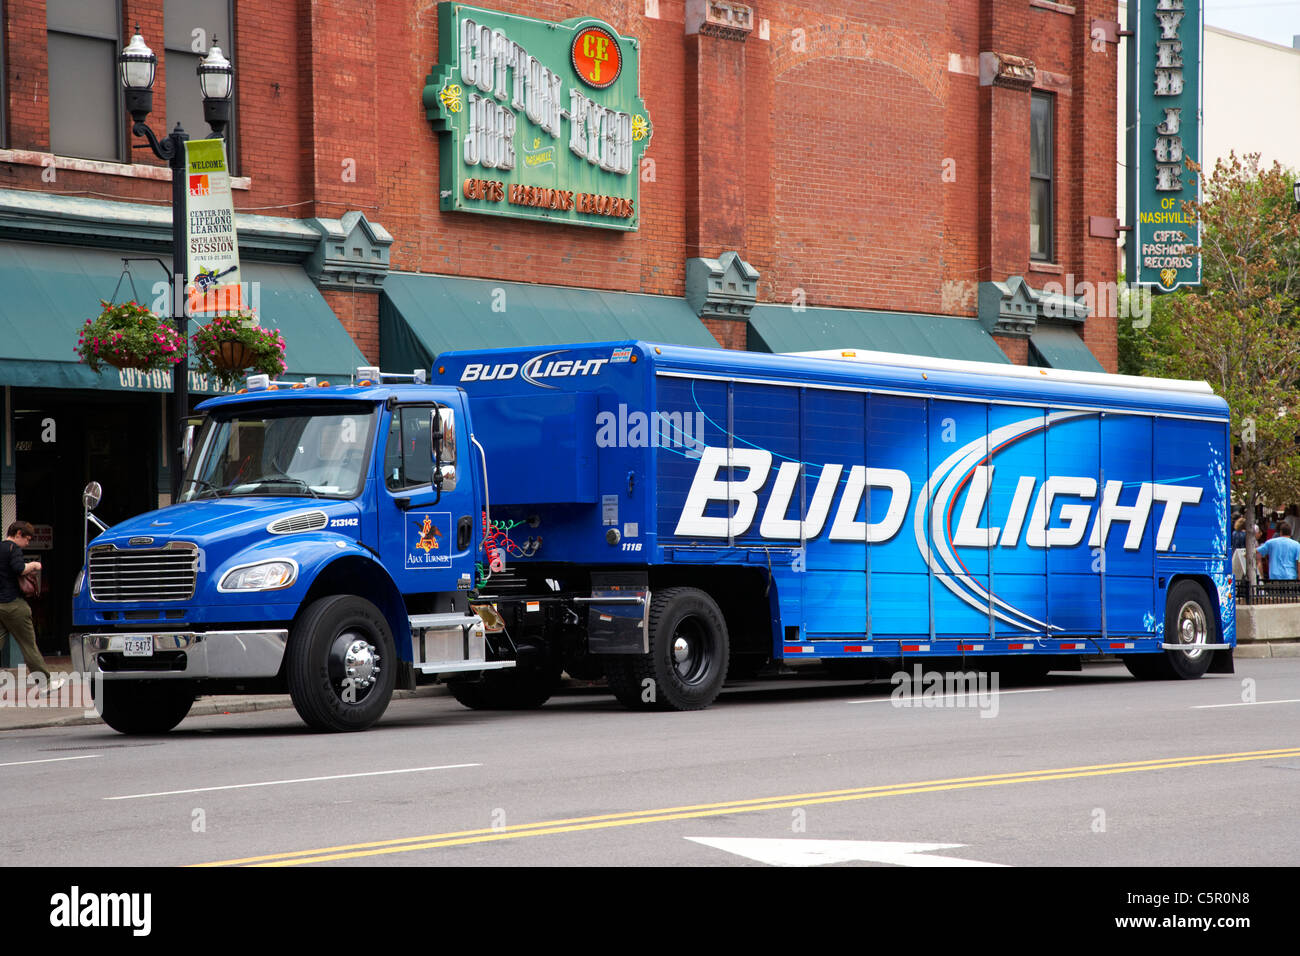 Bud Light Beer Stock Photos & Bud Light Beer Stock Images